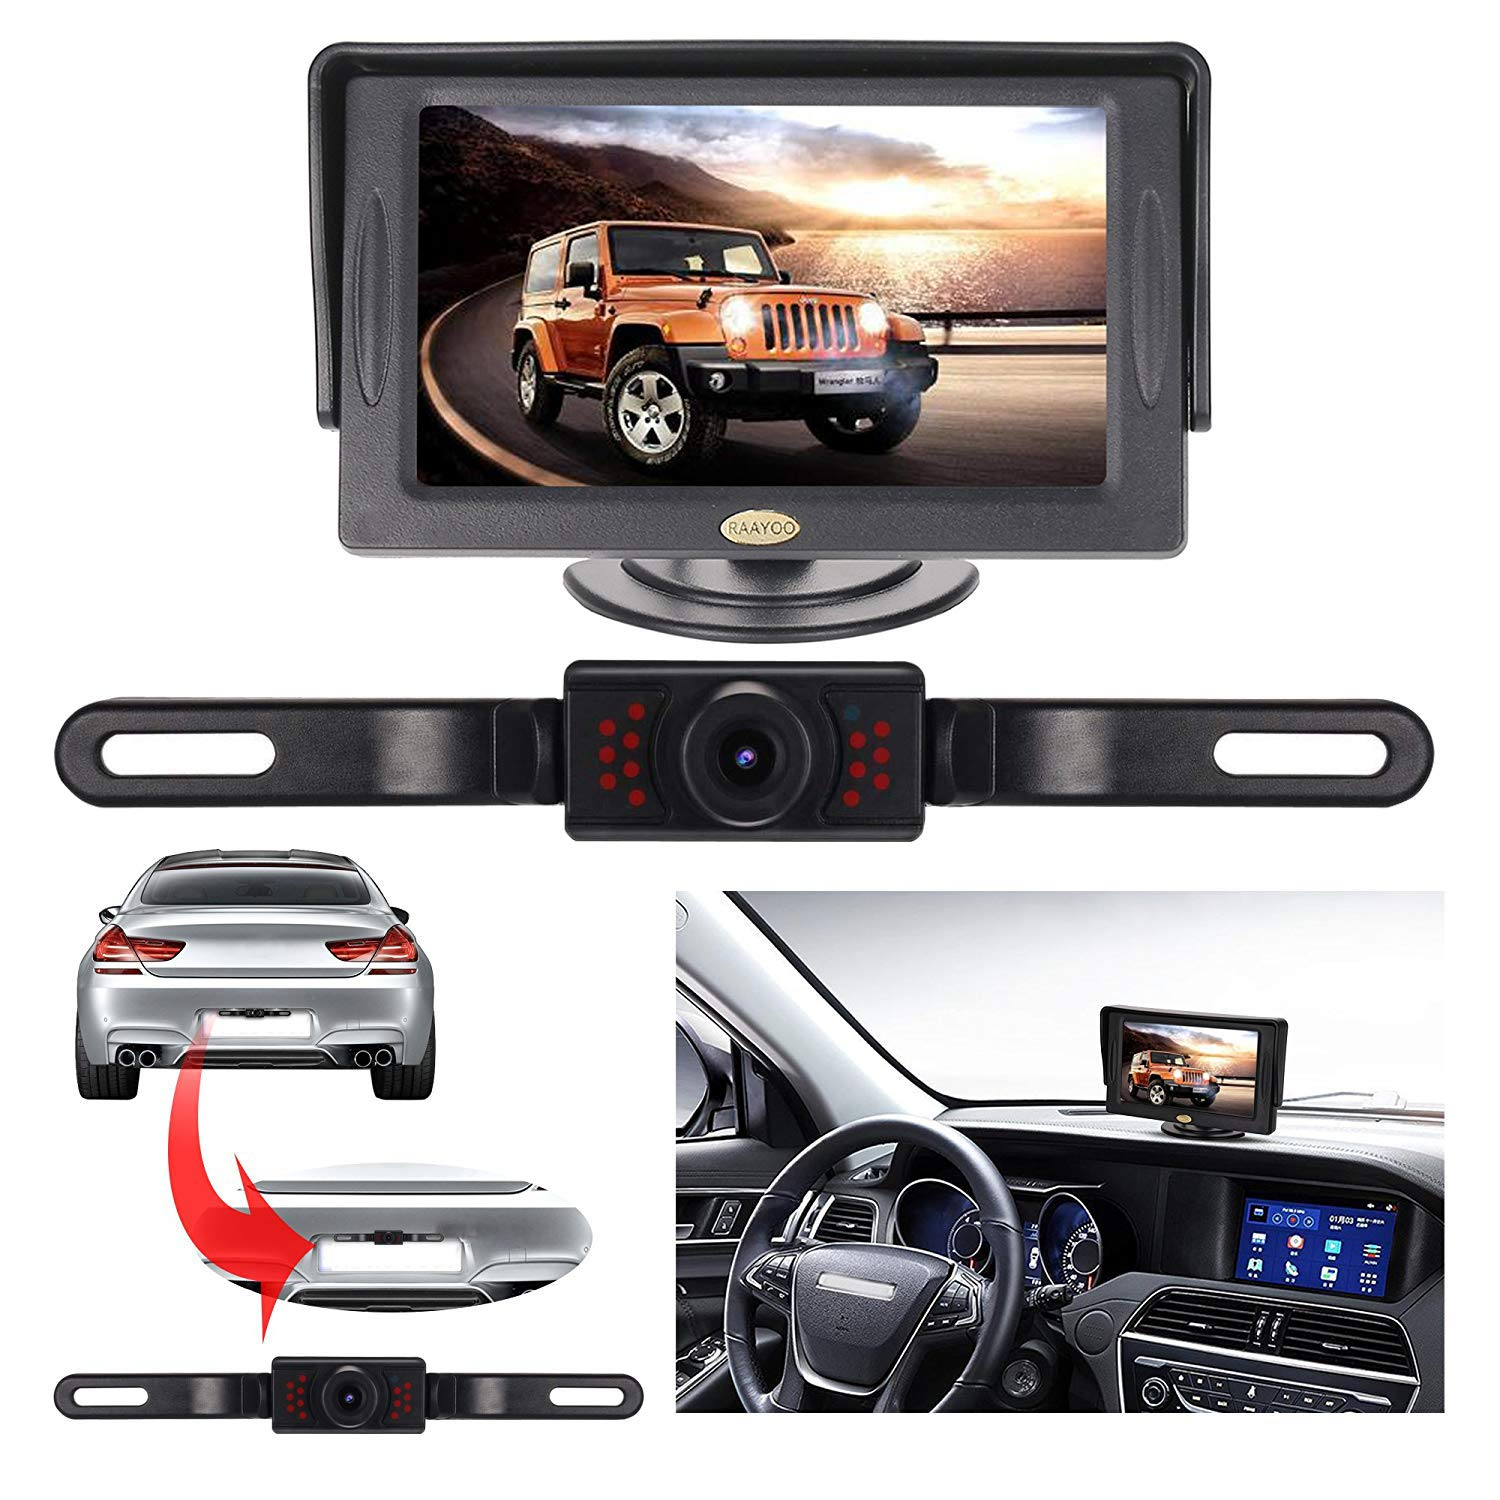 Rear View Monitors/cams & Kits Self-Conscious 4 Ir Light Car Reverse Rear View Camera Night Vision Wide Angle Waterproof Consumer Electronics